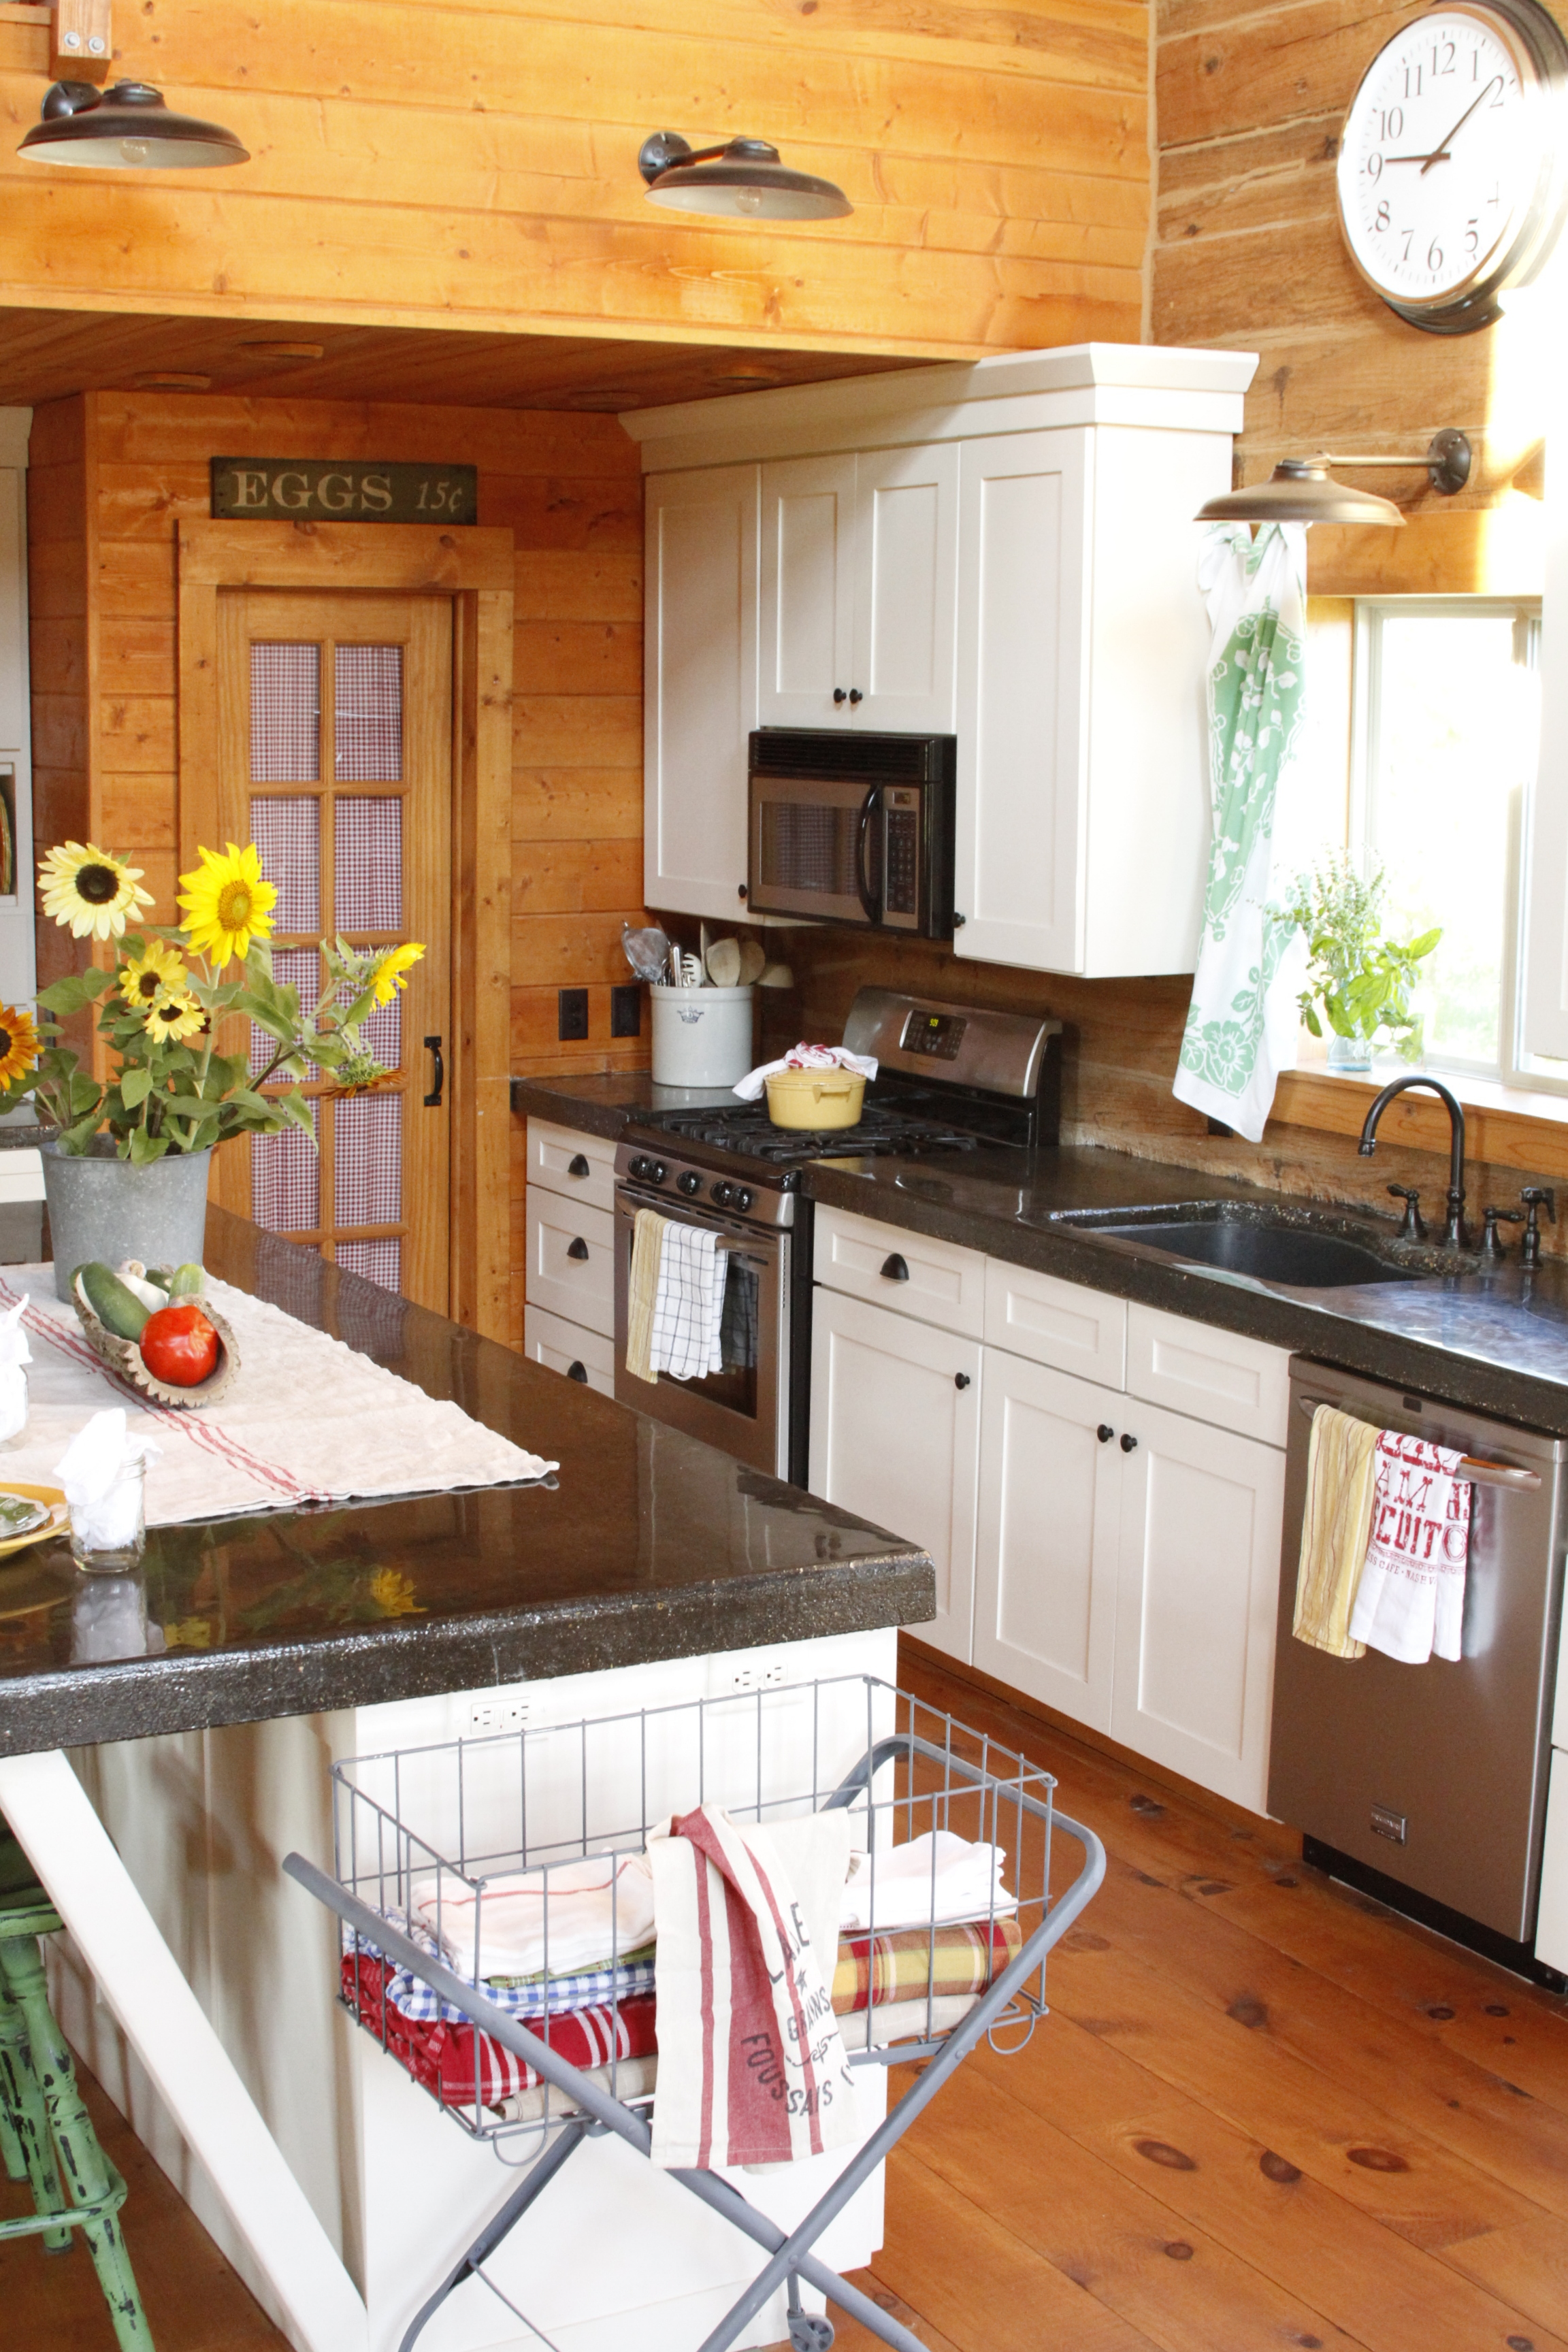 White Kitchen Cupboards in a Log Home | creativecaincabin.com